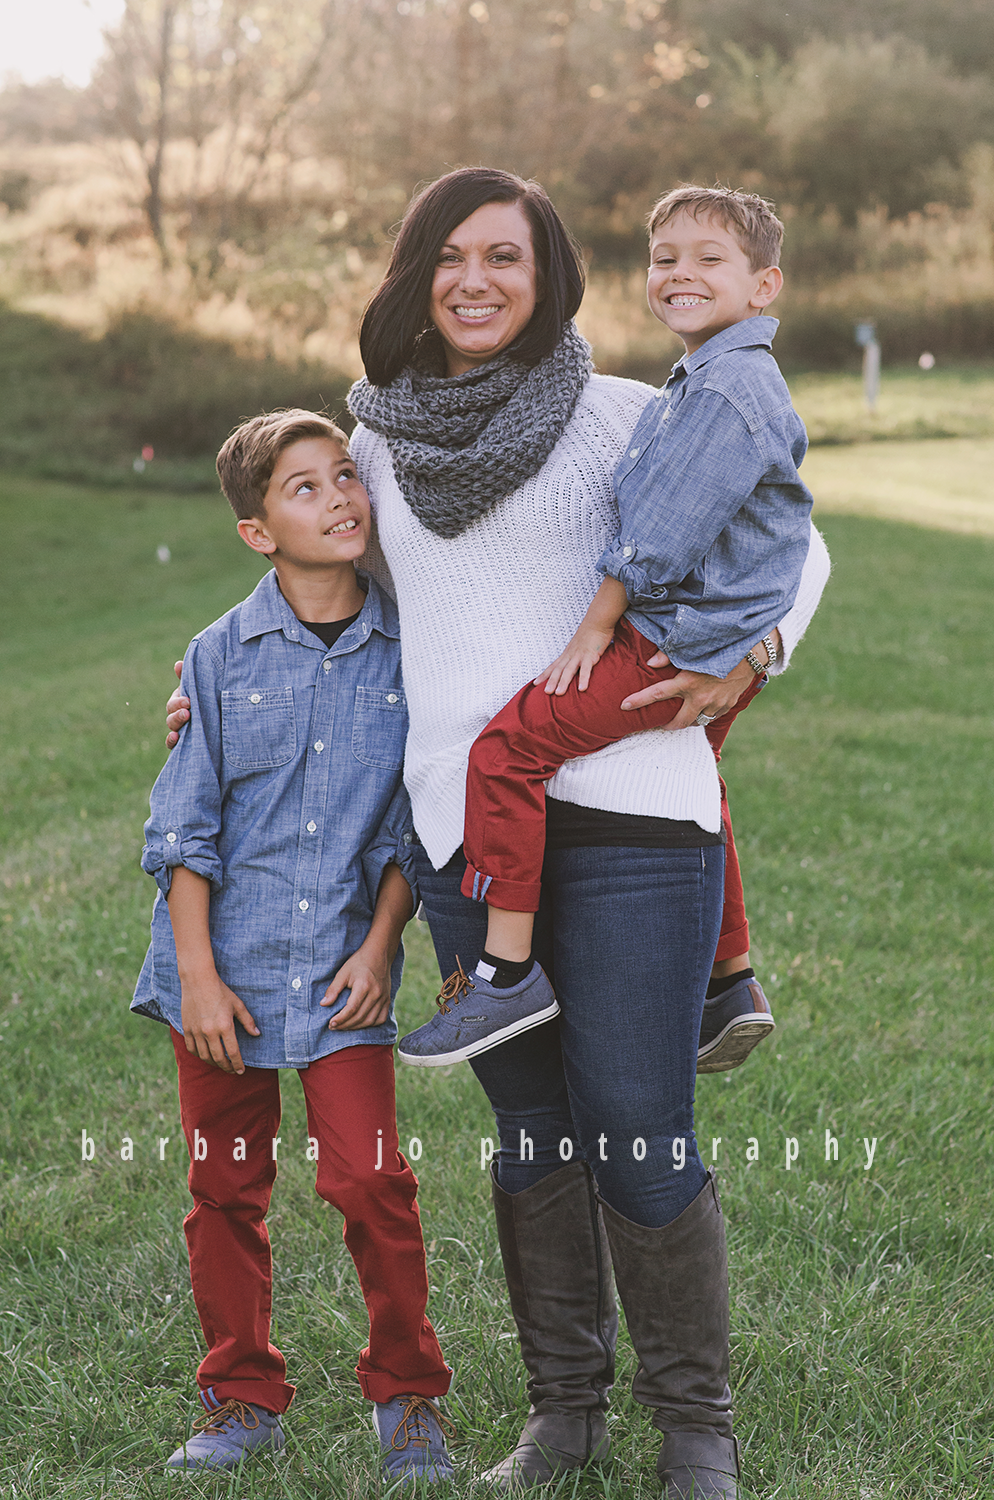 bjp-family-photographer-kids-siblings-blended-brothers-sisters-fall-mini-sessions-children-love-rachel16.png